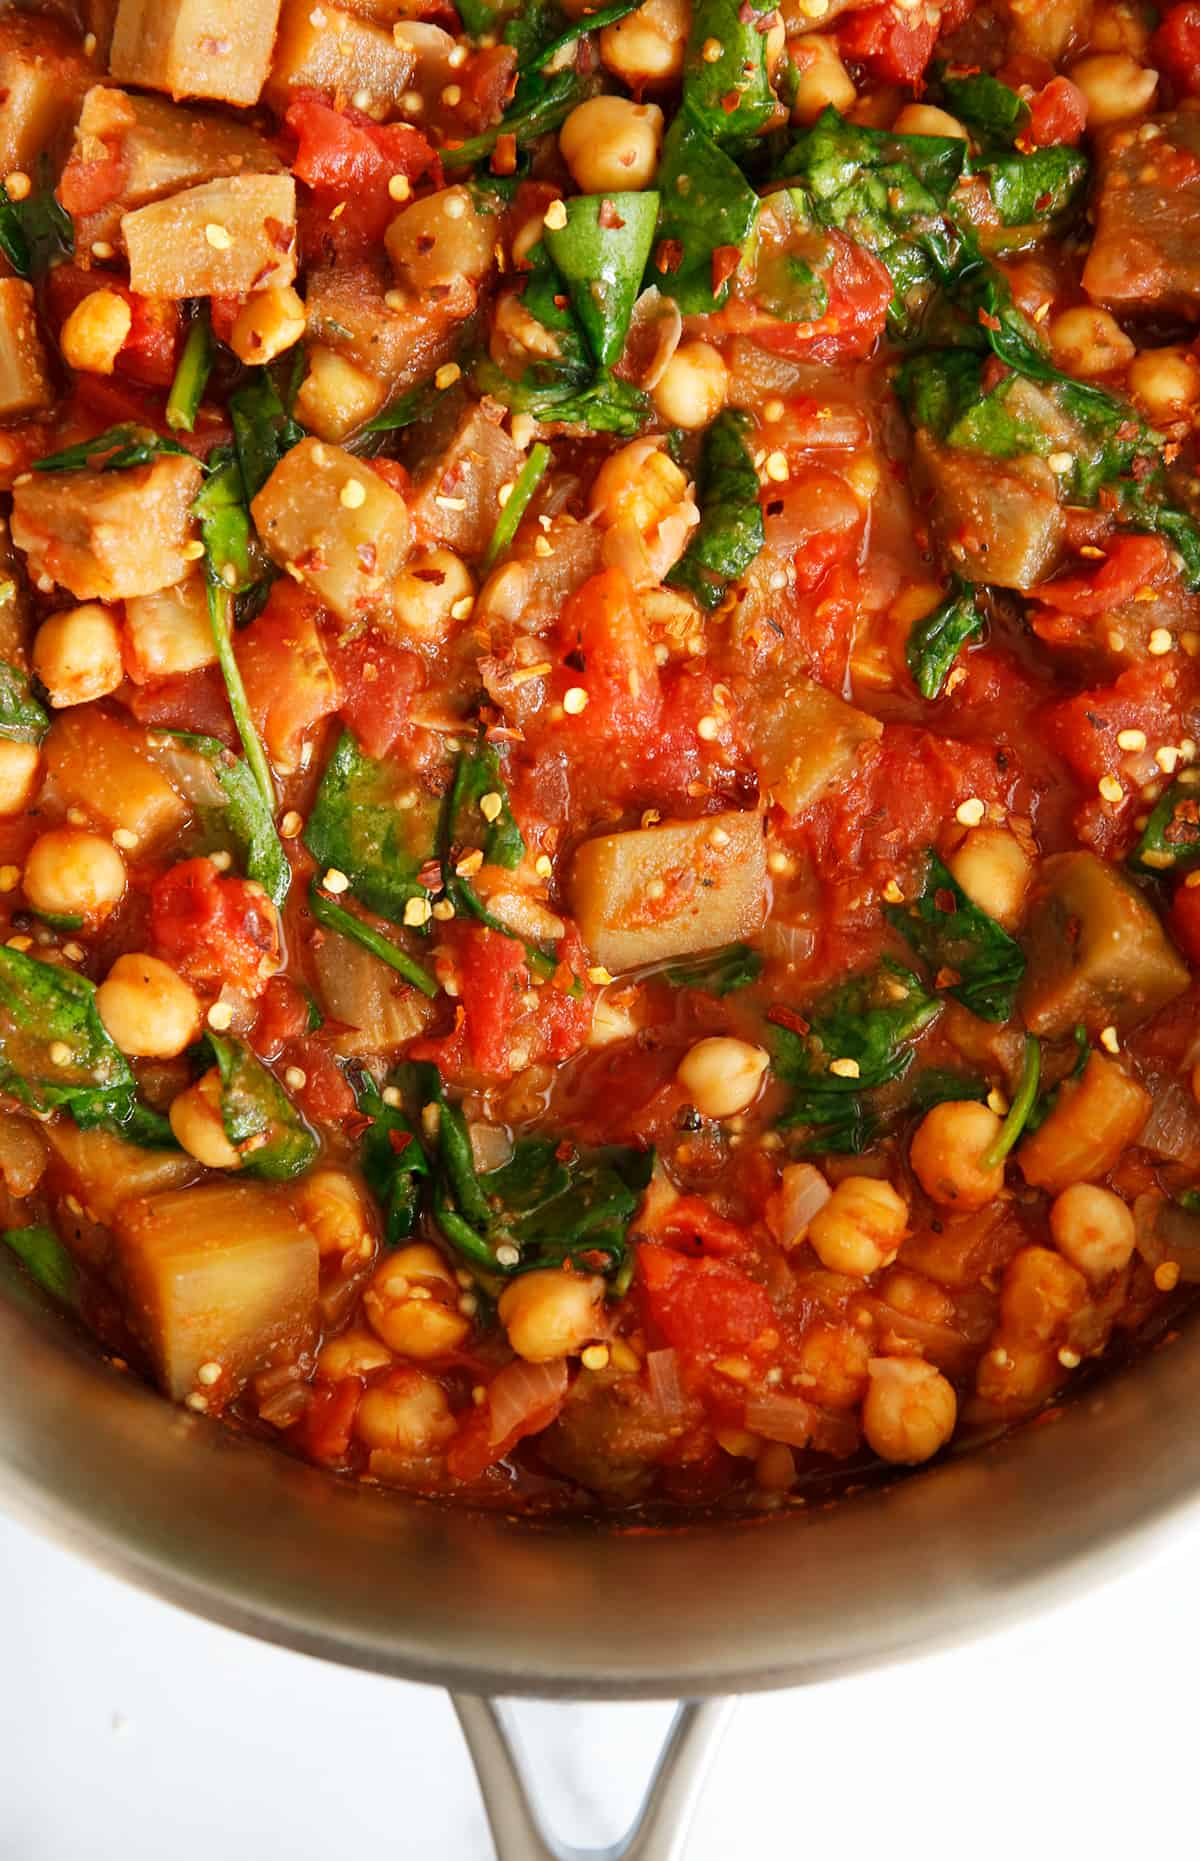 Tomato and eggplant chickpea stew in pot with spinach